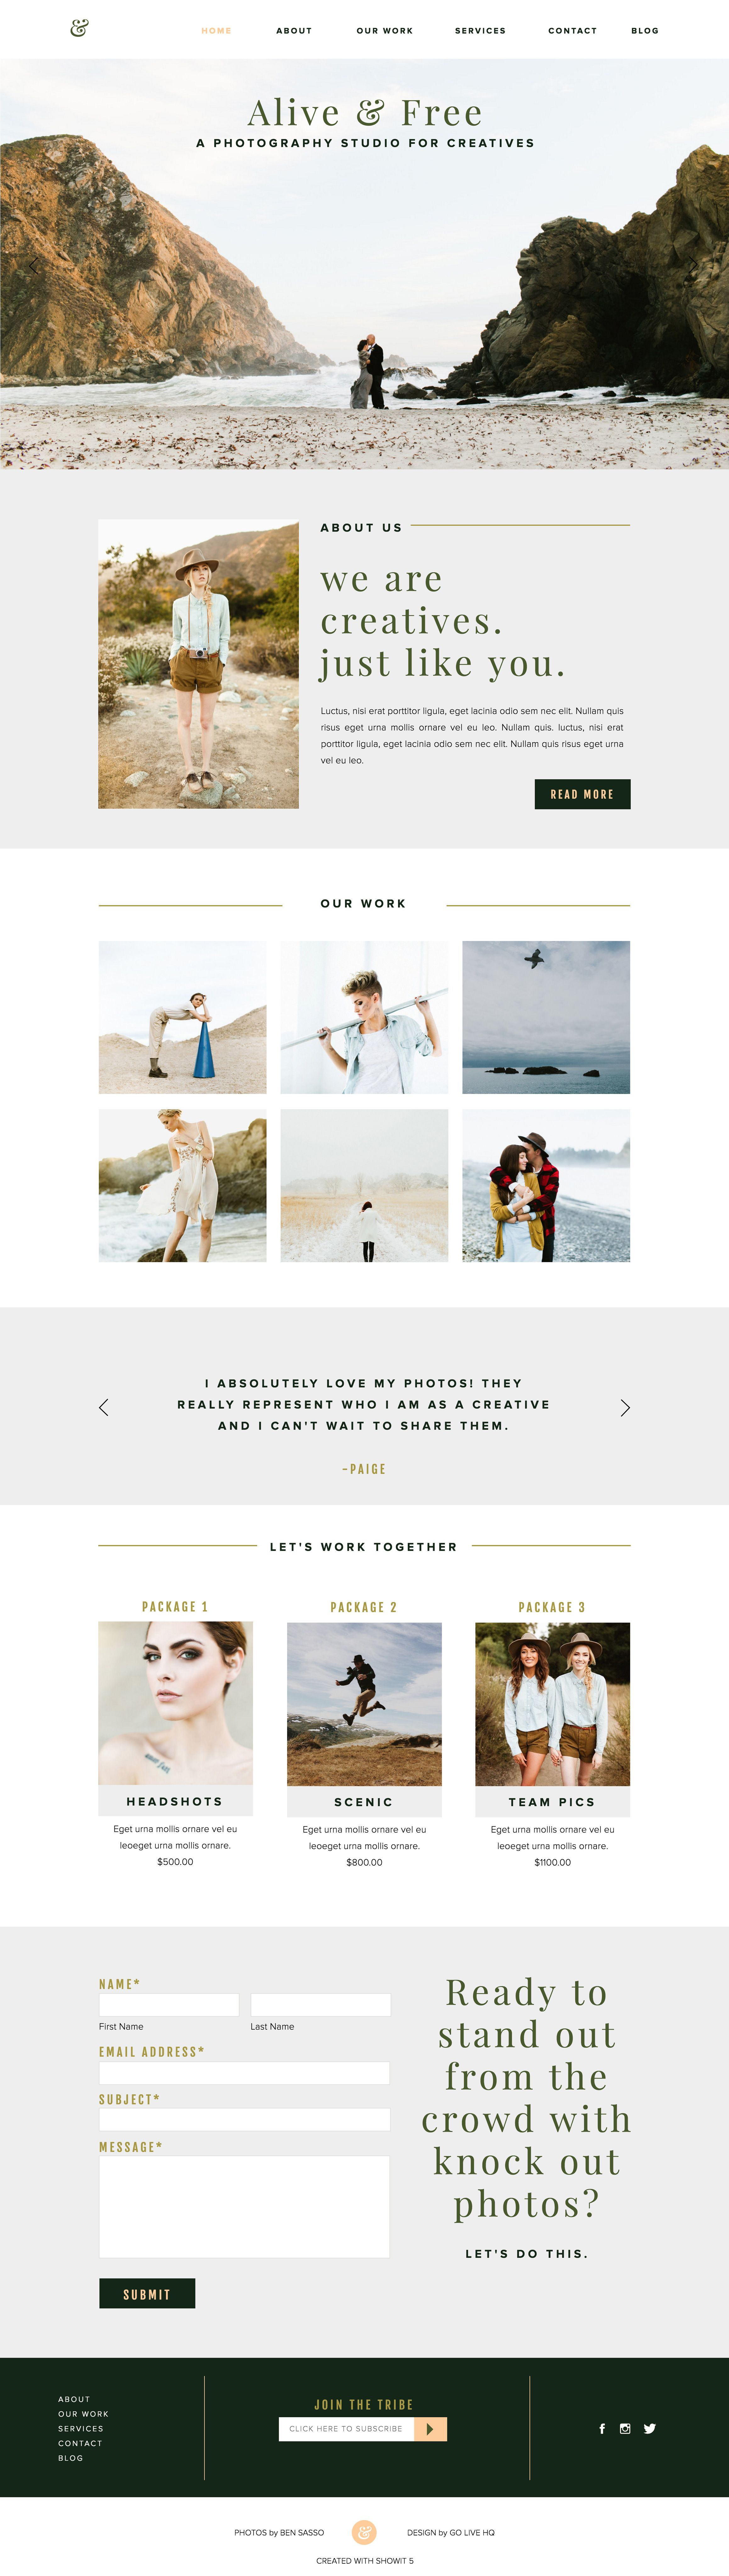 alive free showit free photography website template branding